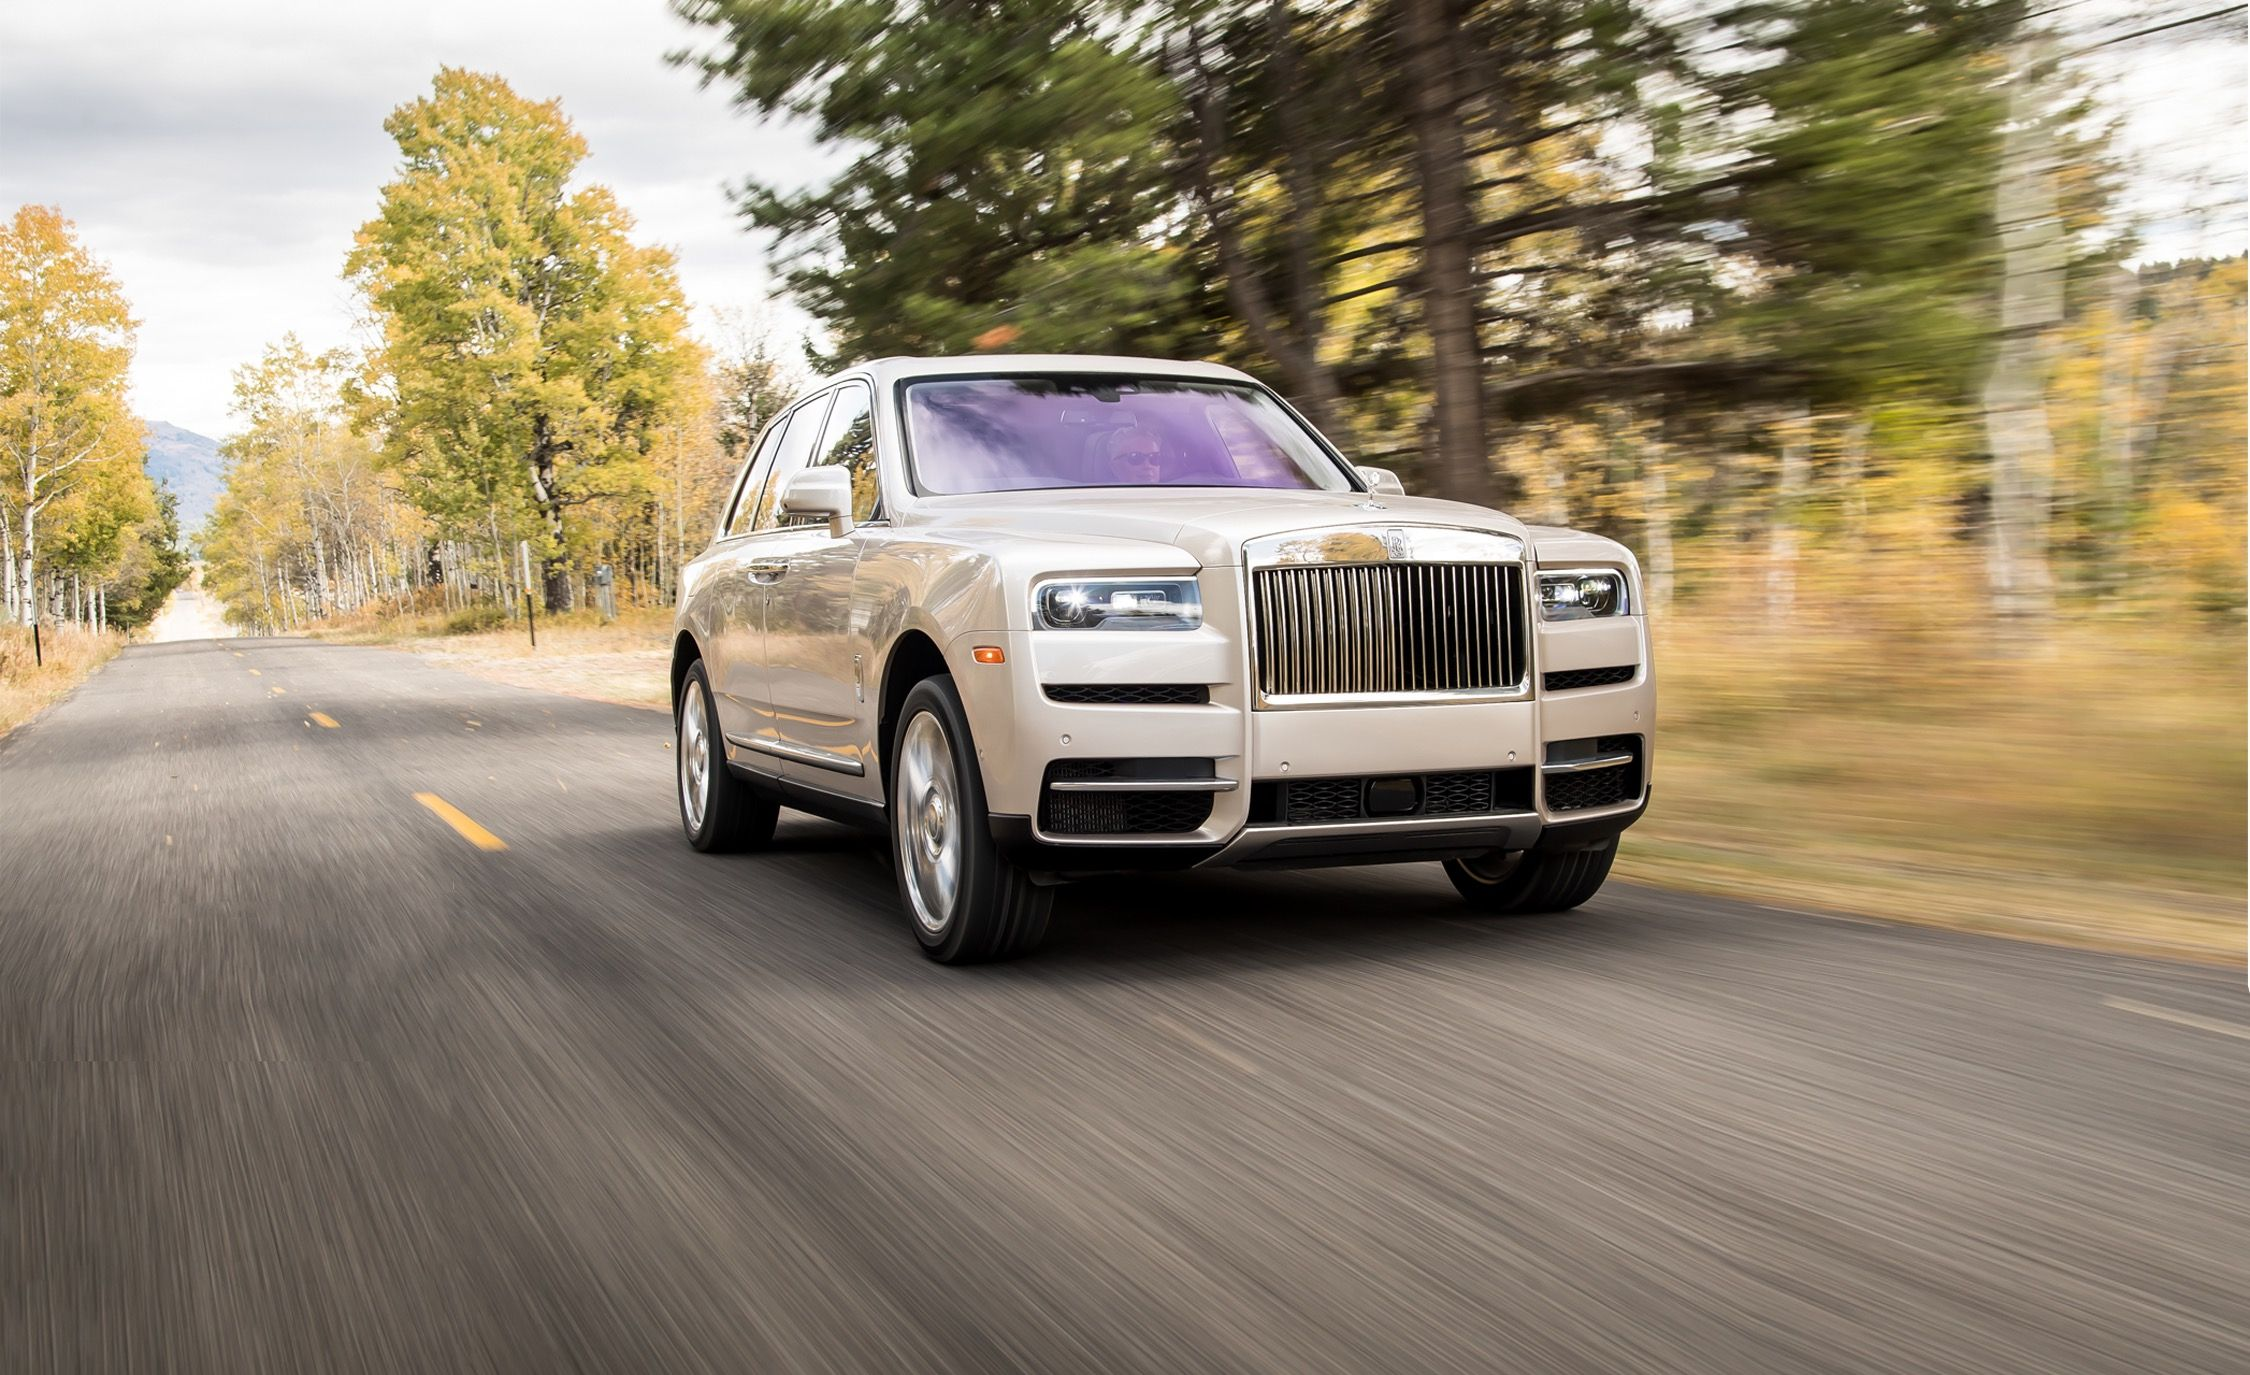 The 2019 Rolls Royce Cullinan Is an SUV for Royalty